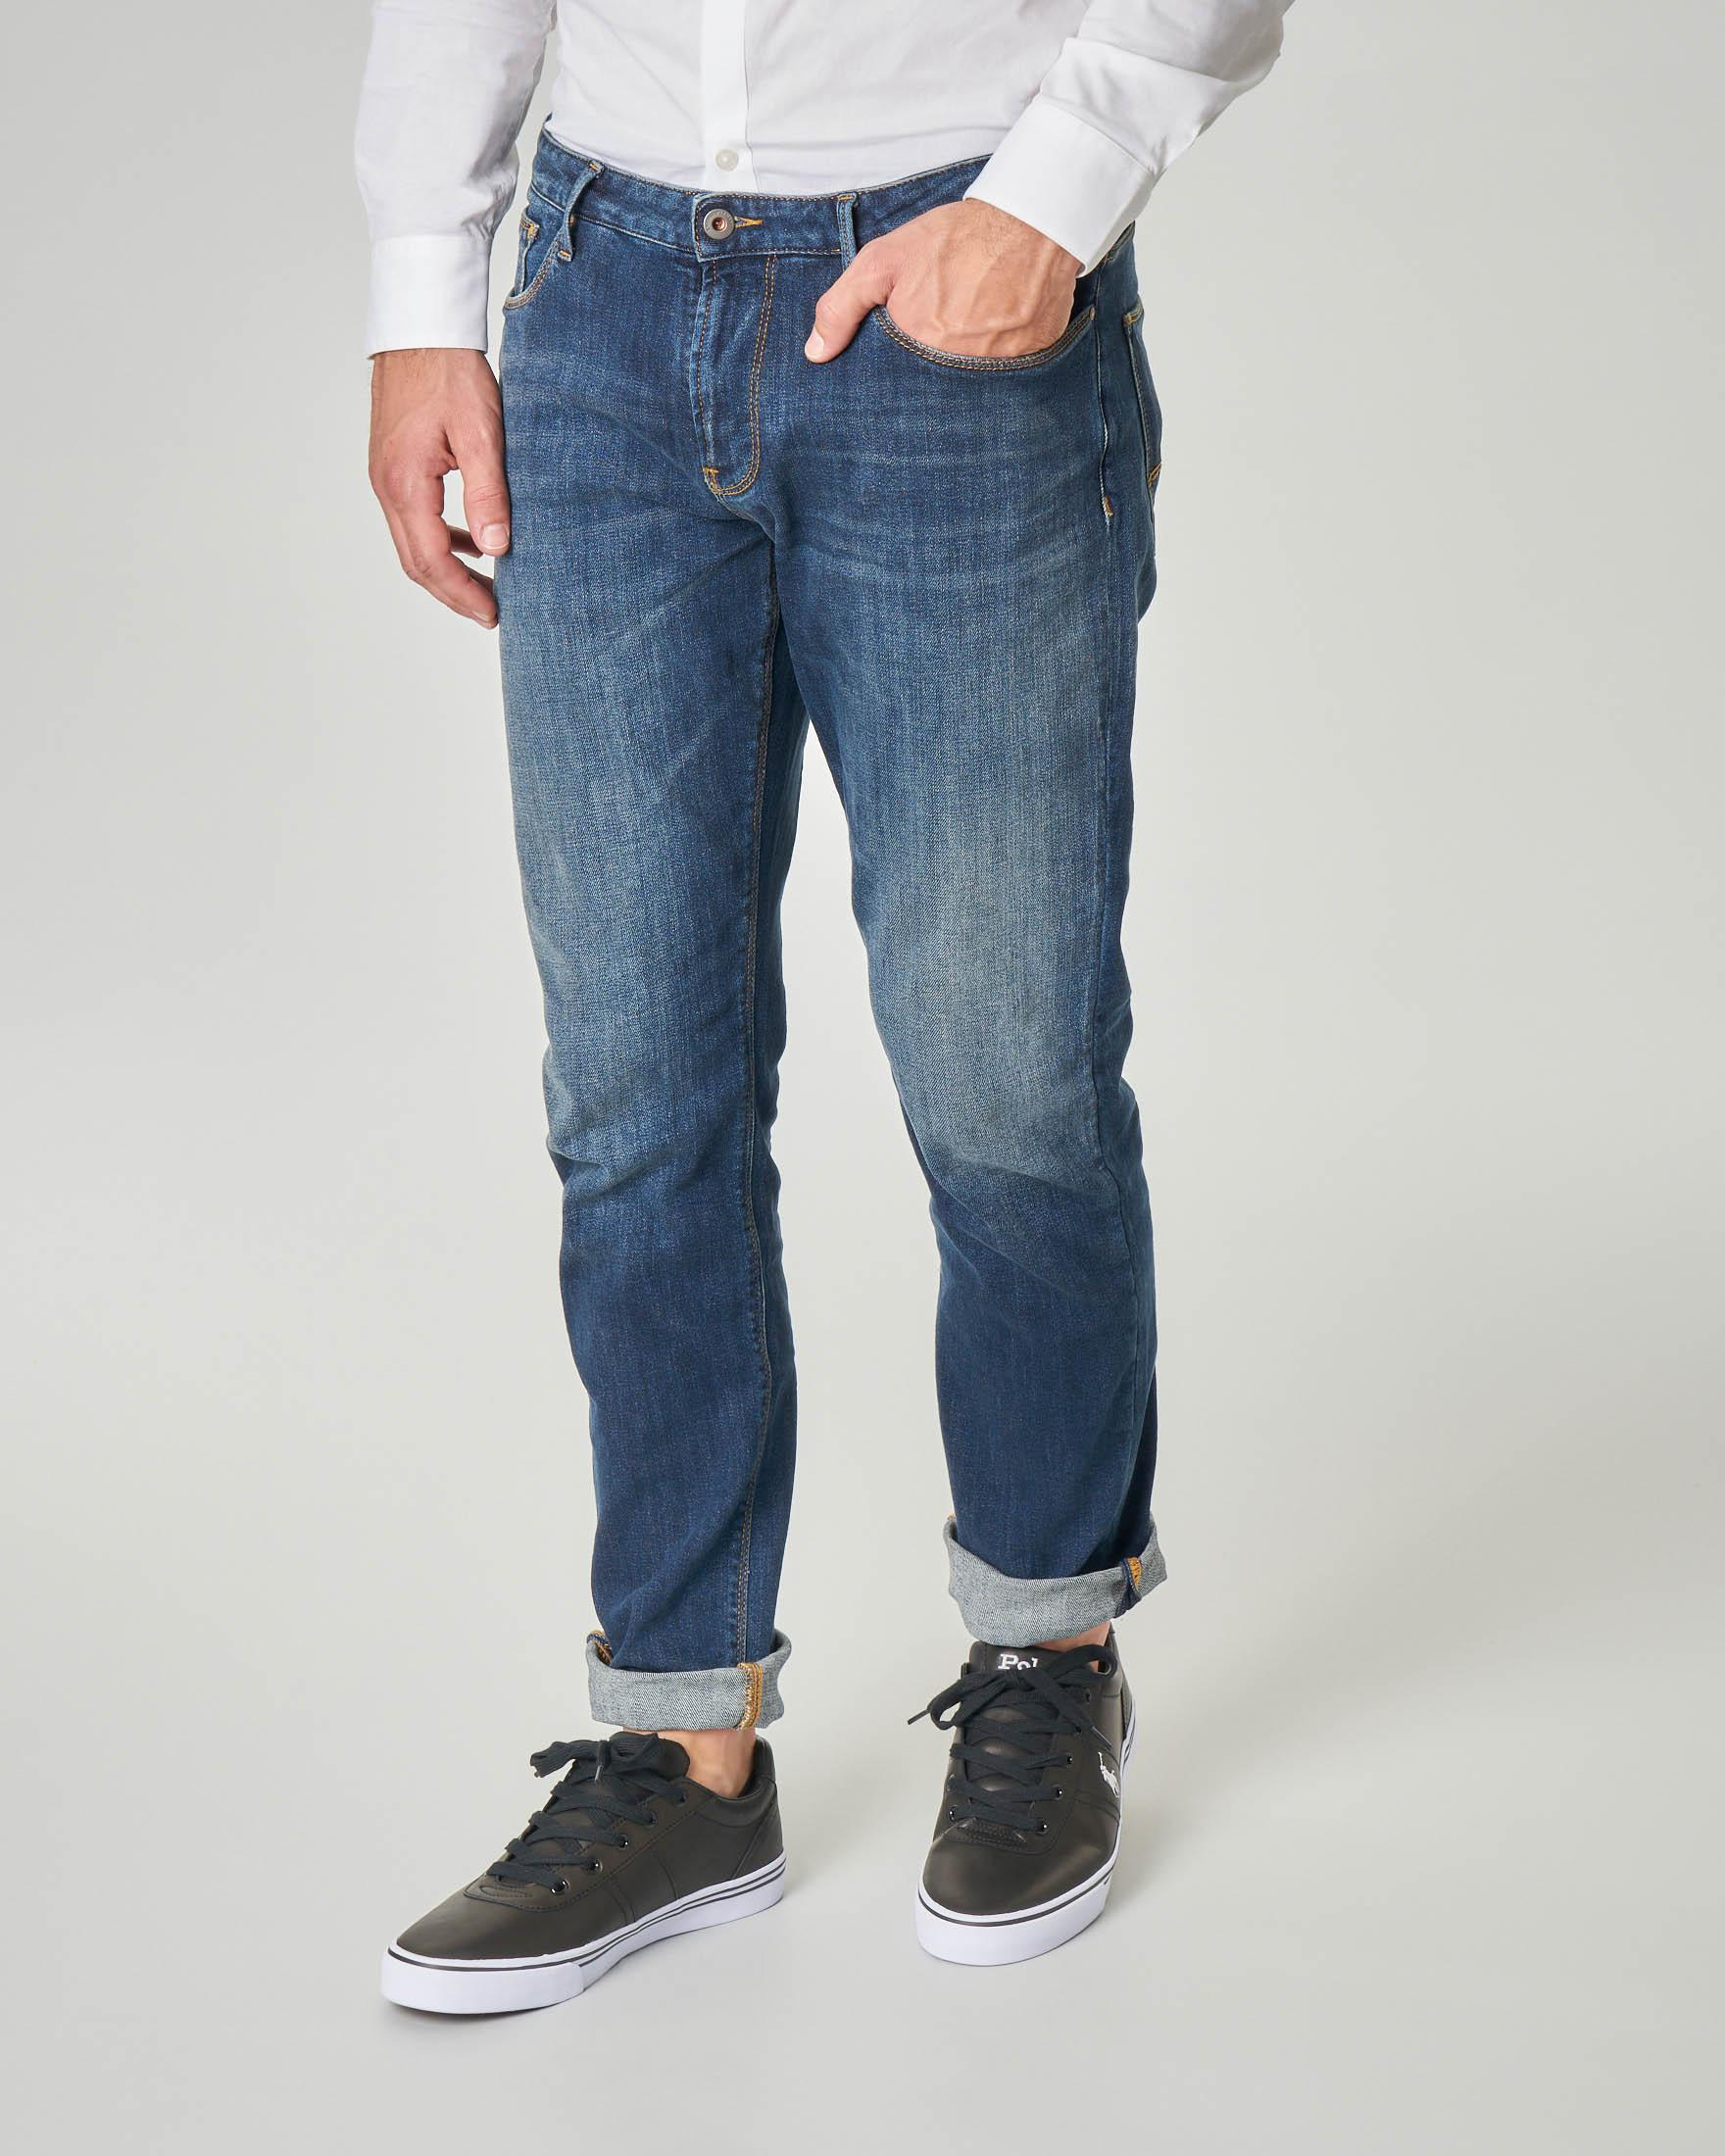 Jeans J06 slim-fit lavaggio stone wash